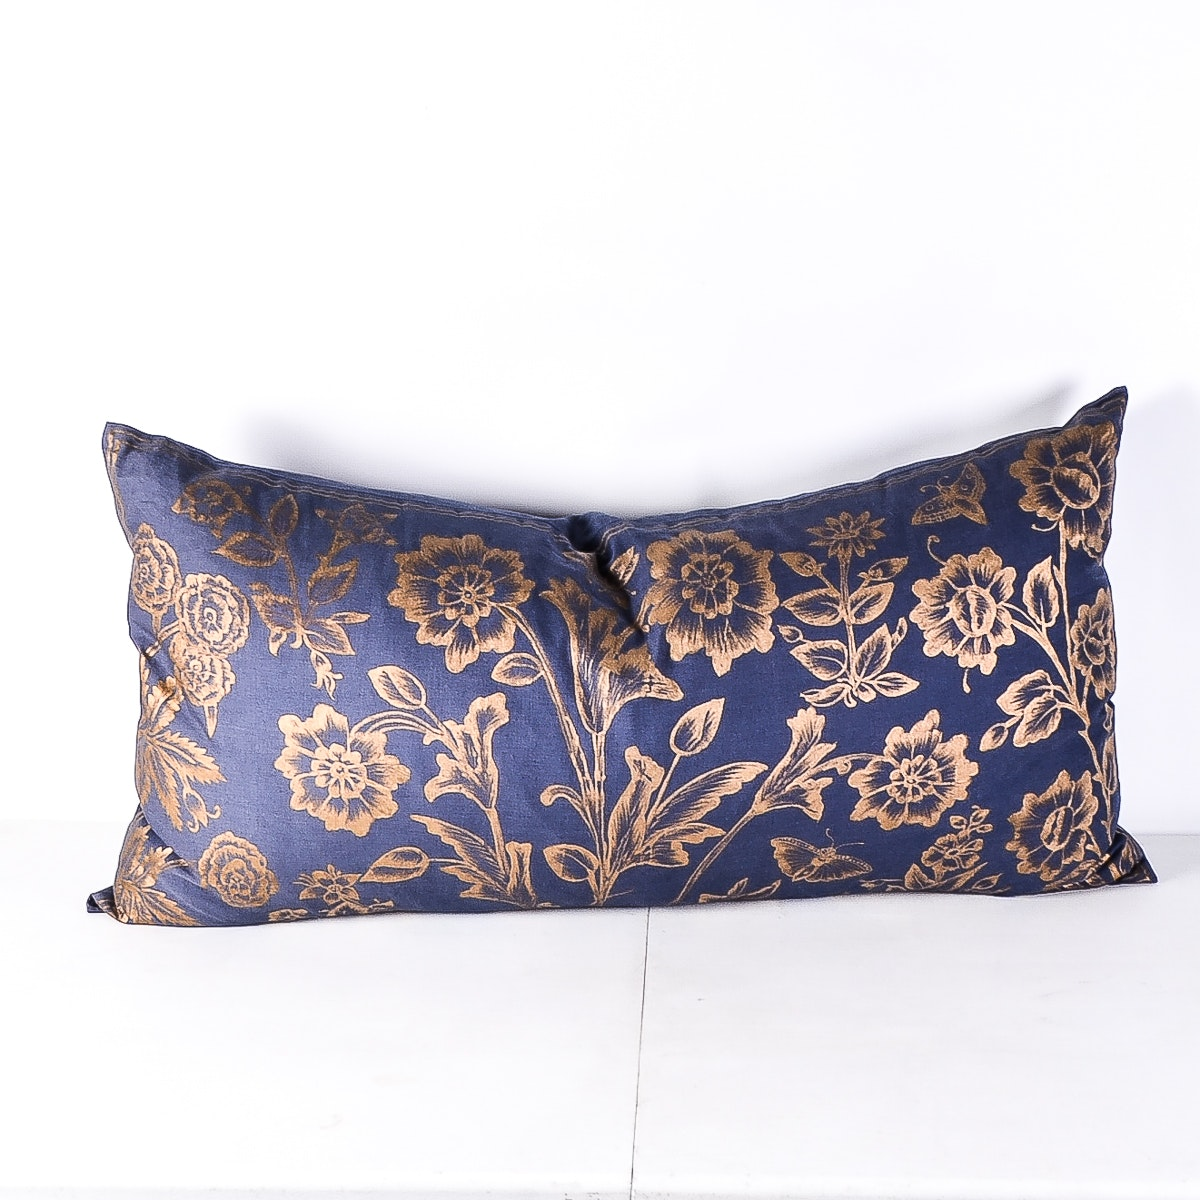 Decorative Linen Upholstered Down Filled Pillow